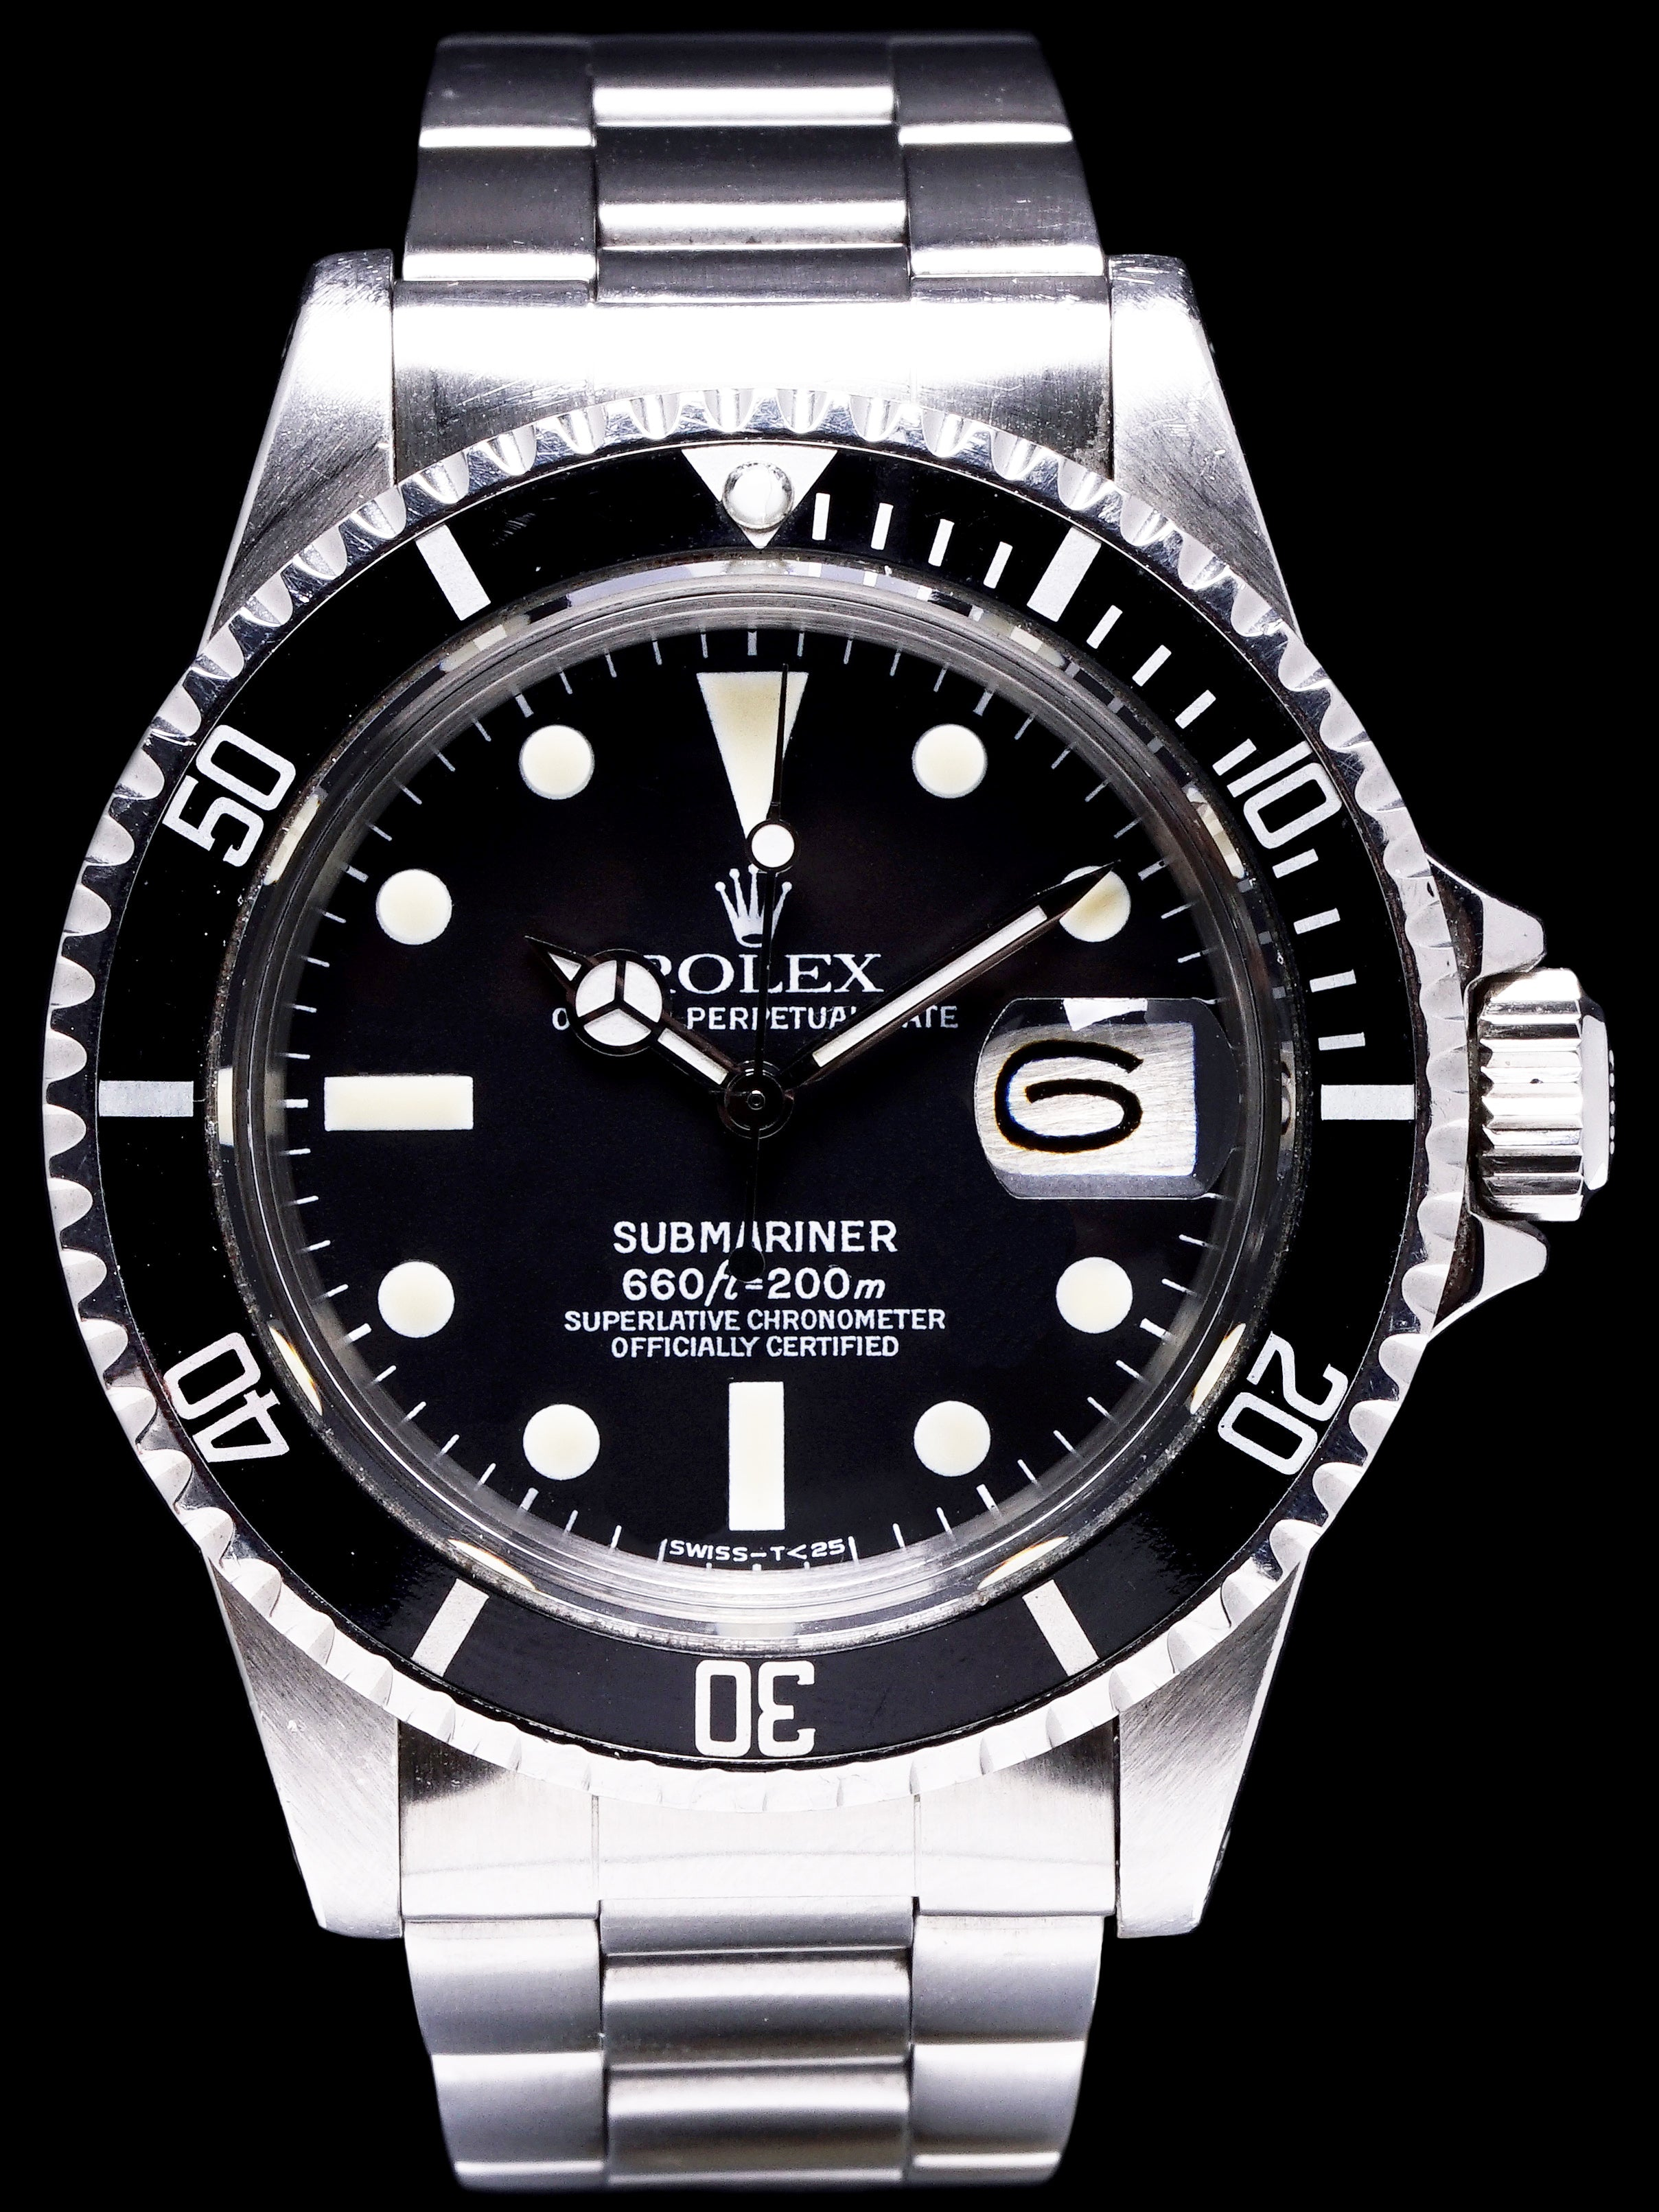 *Unpolished* 1978 Rolex Submariner (Ref.1680)